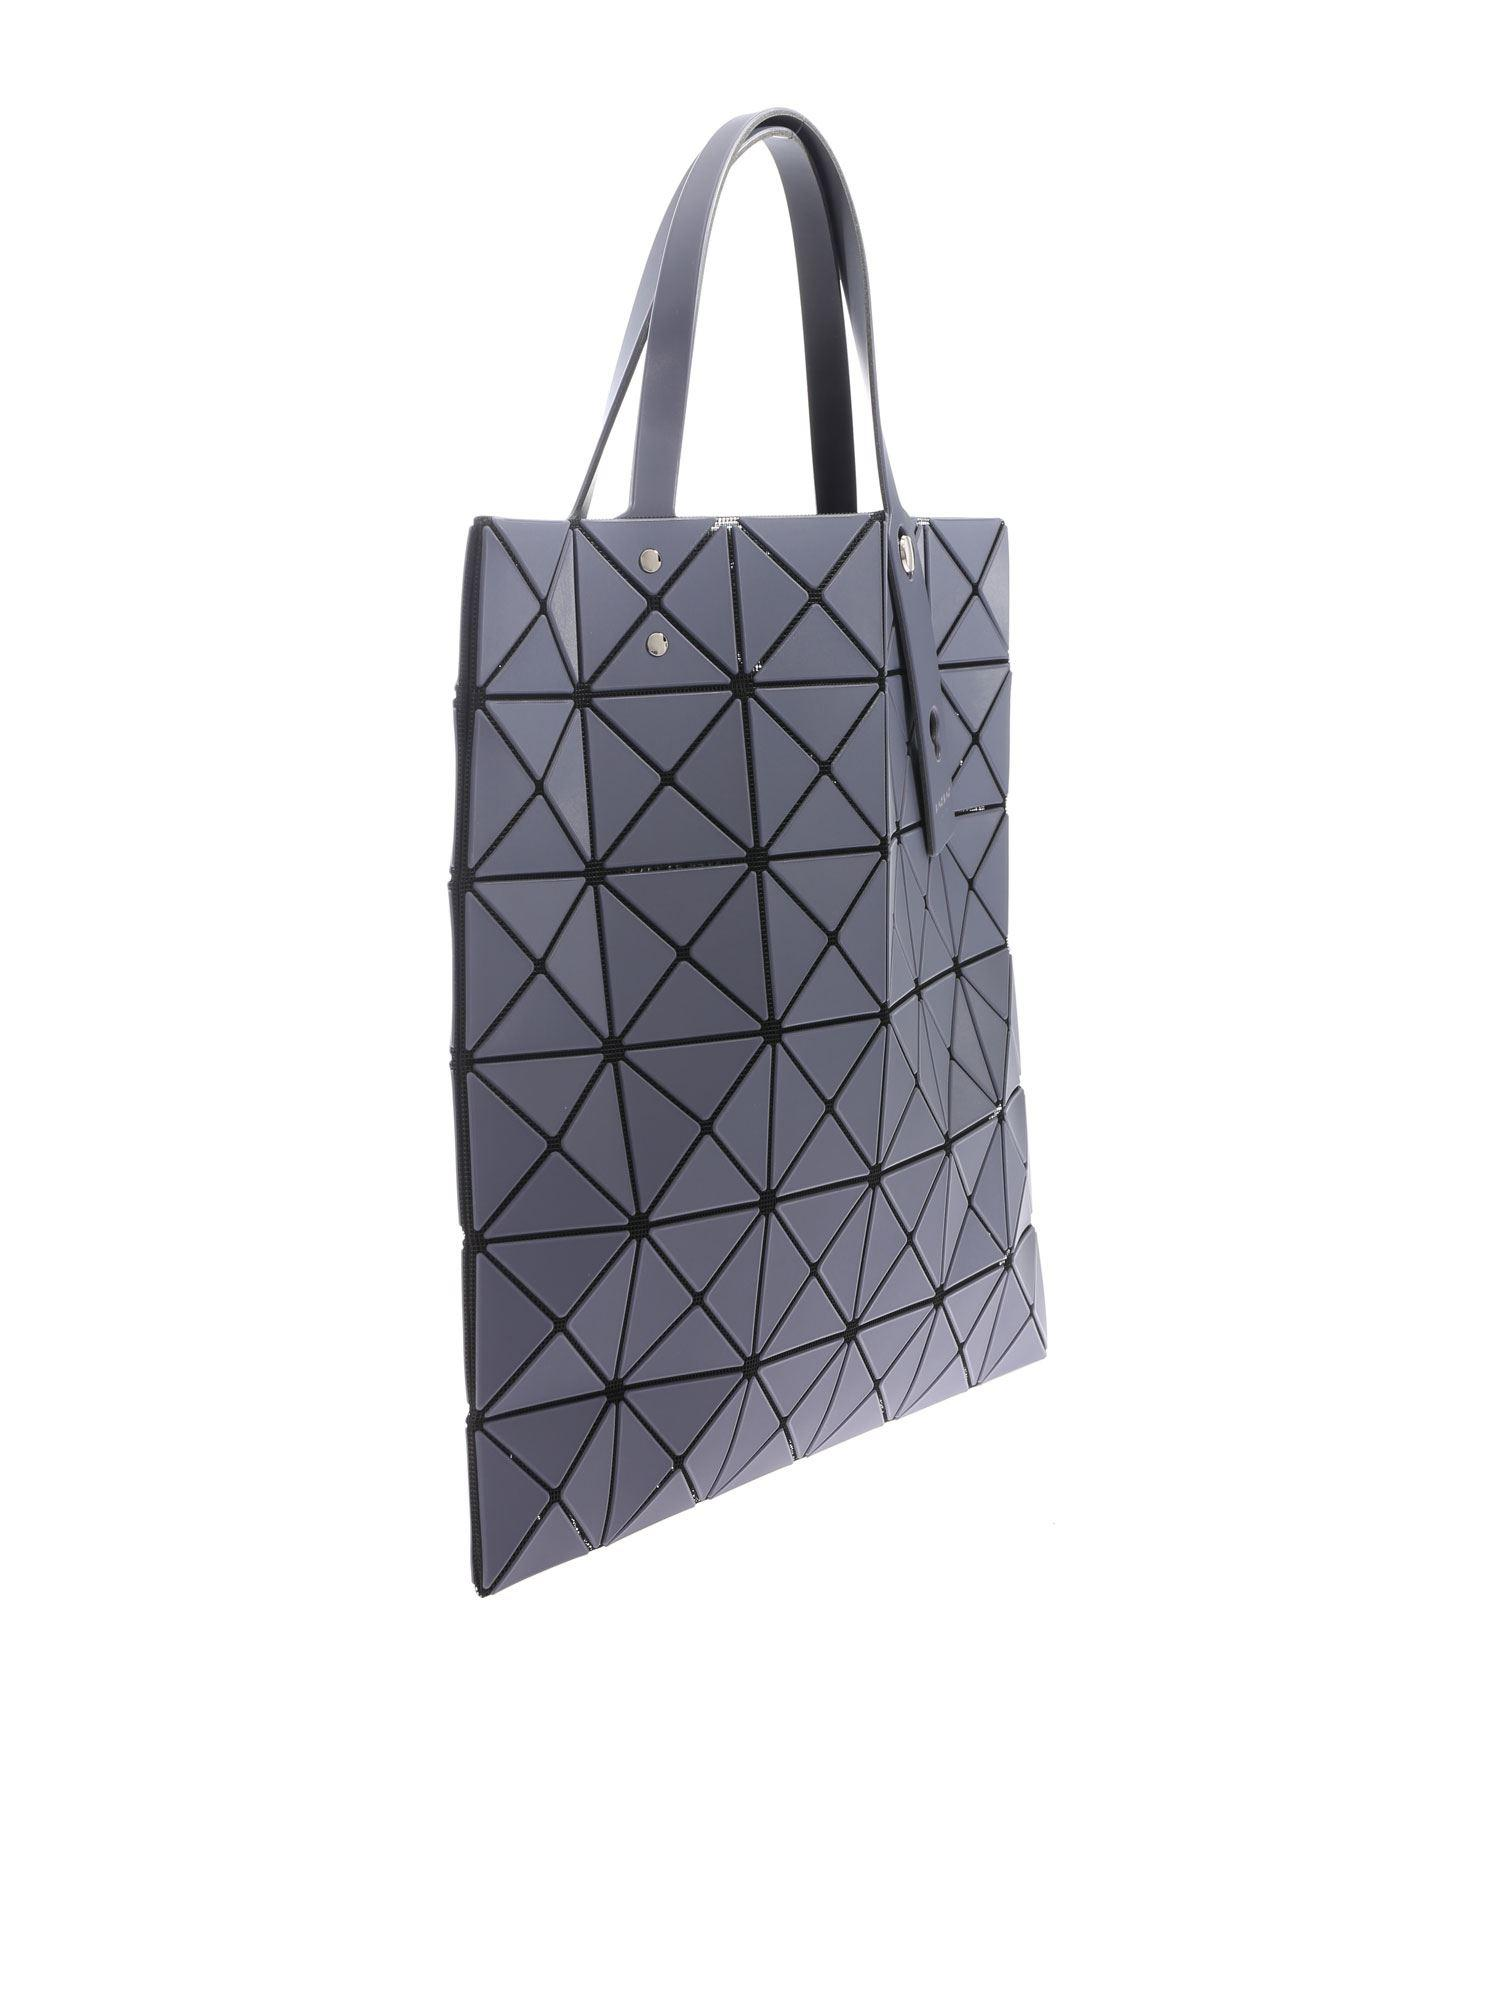 Bao Bao Issey Miyake - Lucent Frost Gray Bag With Triangle Pattern - Lyst.  View fullscreen 1871375cf8751